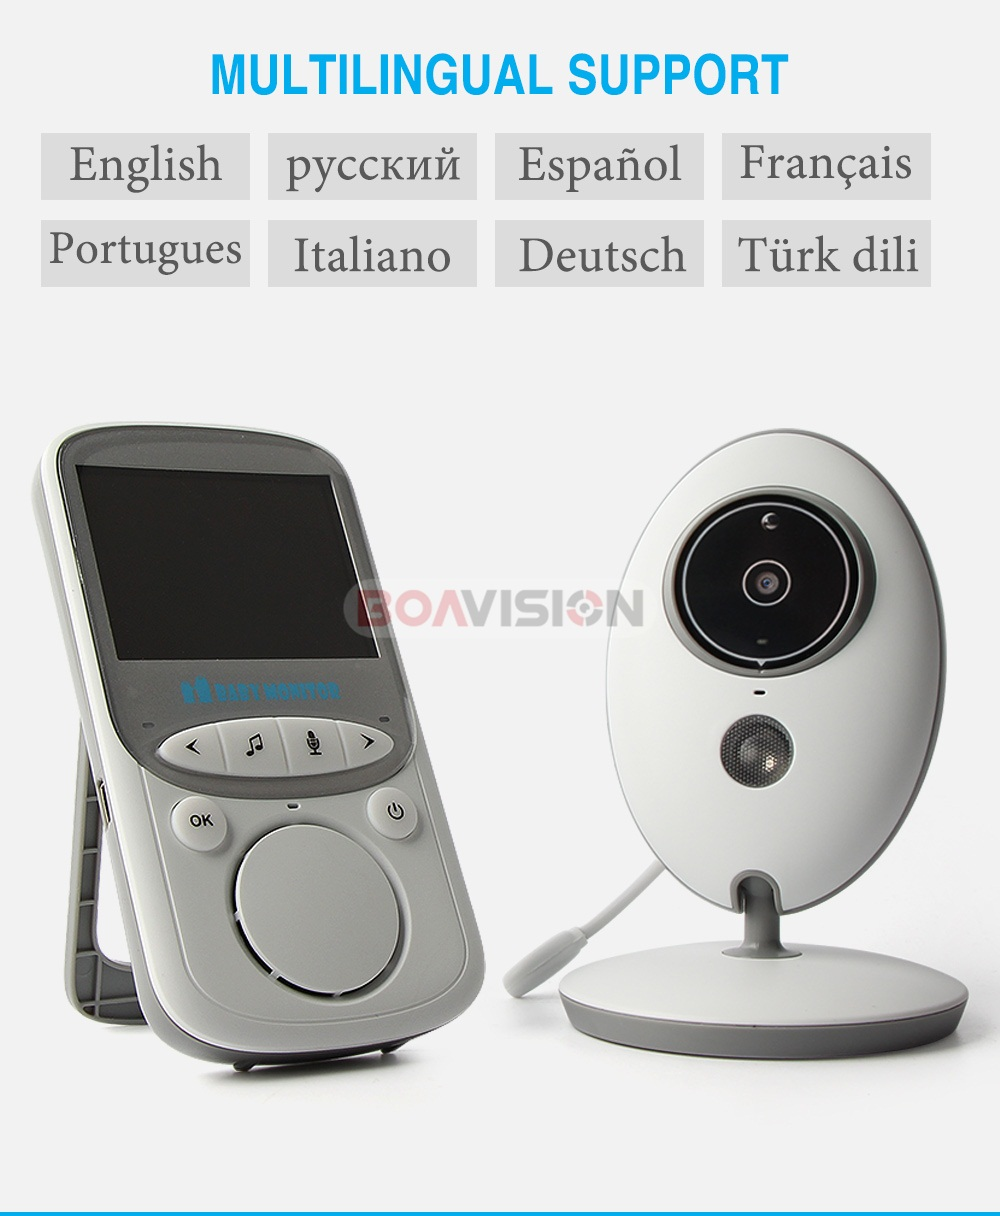 07 2.4ghz wireless video baby monitor